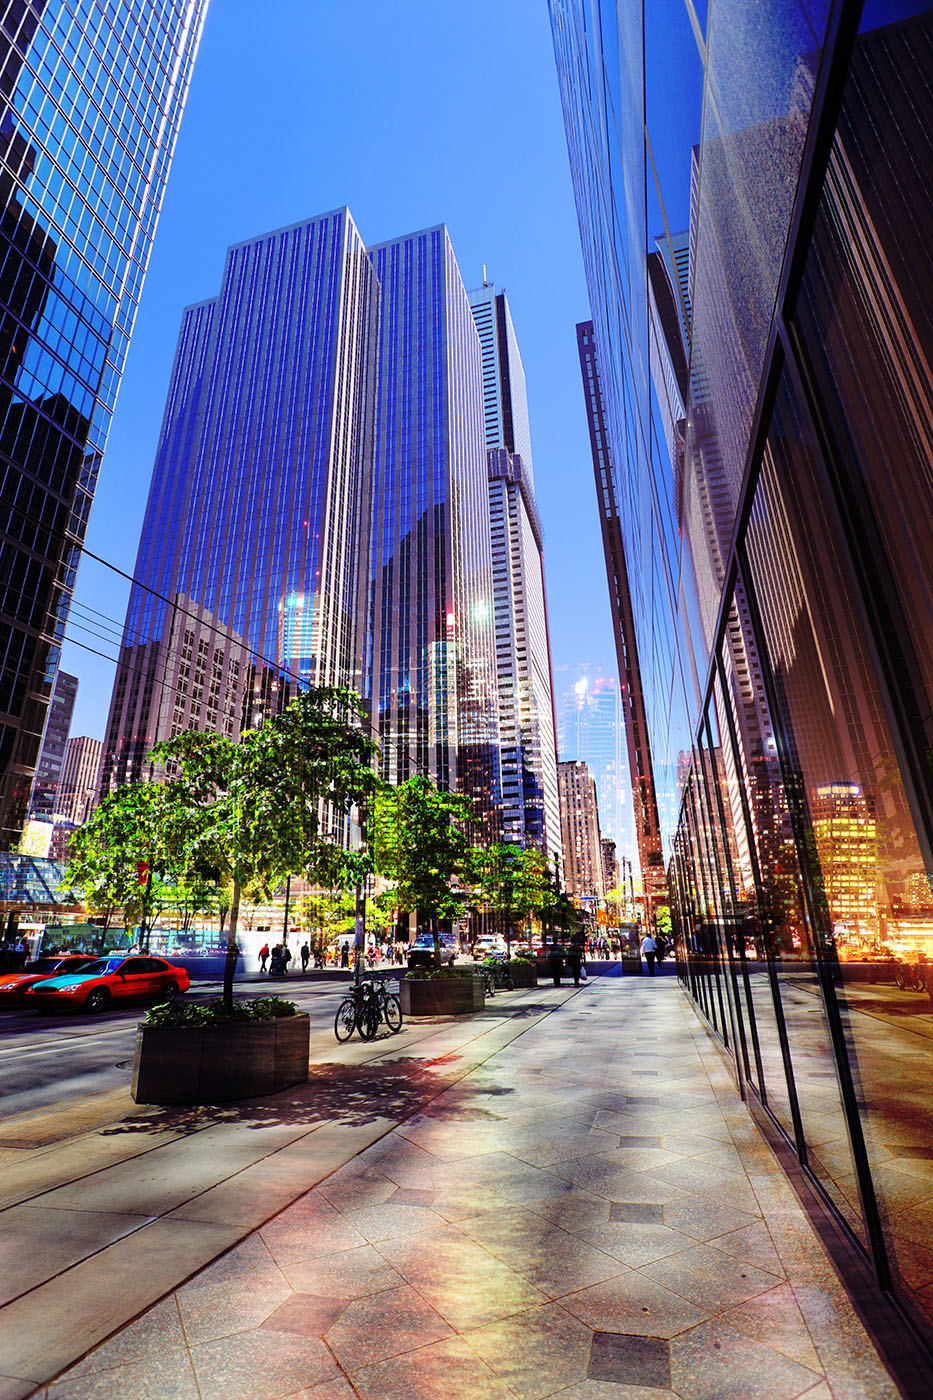 Downtown Office Street 4 - Royalty-Free Stock Imagery